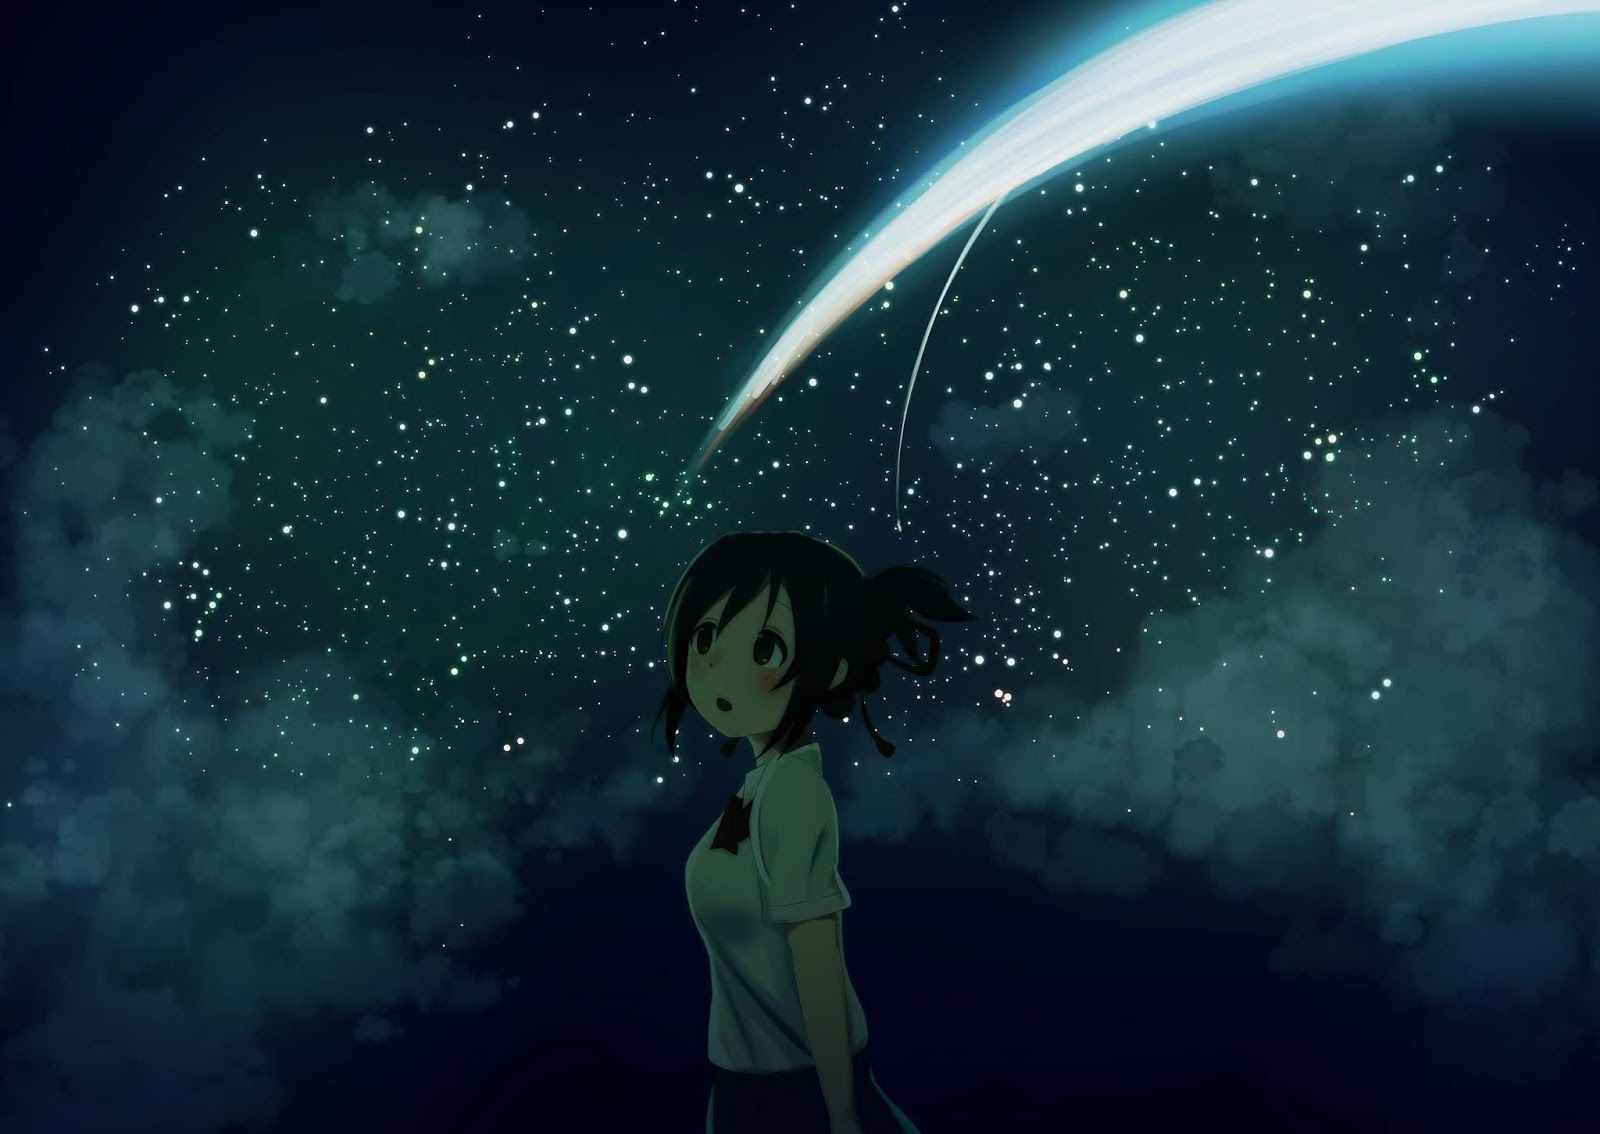 AowVN%2B%252819%2529 - [ Hình Nền ] Anime Your Name. - Kimi no Nawa full HD cực đẹp | Anime Wallpaper